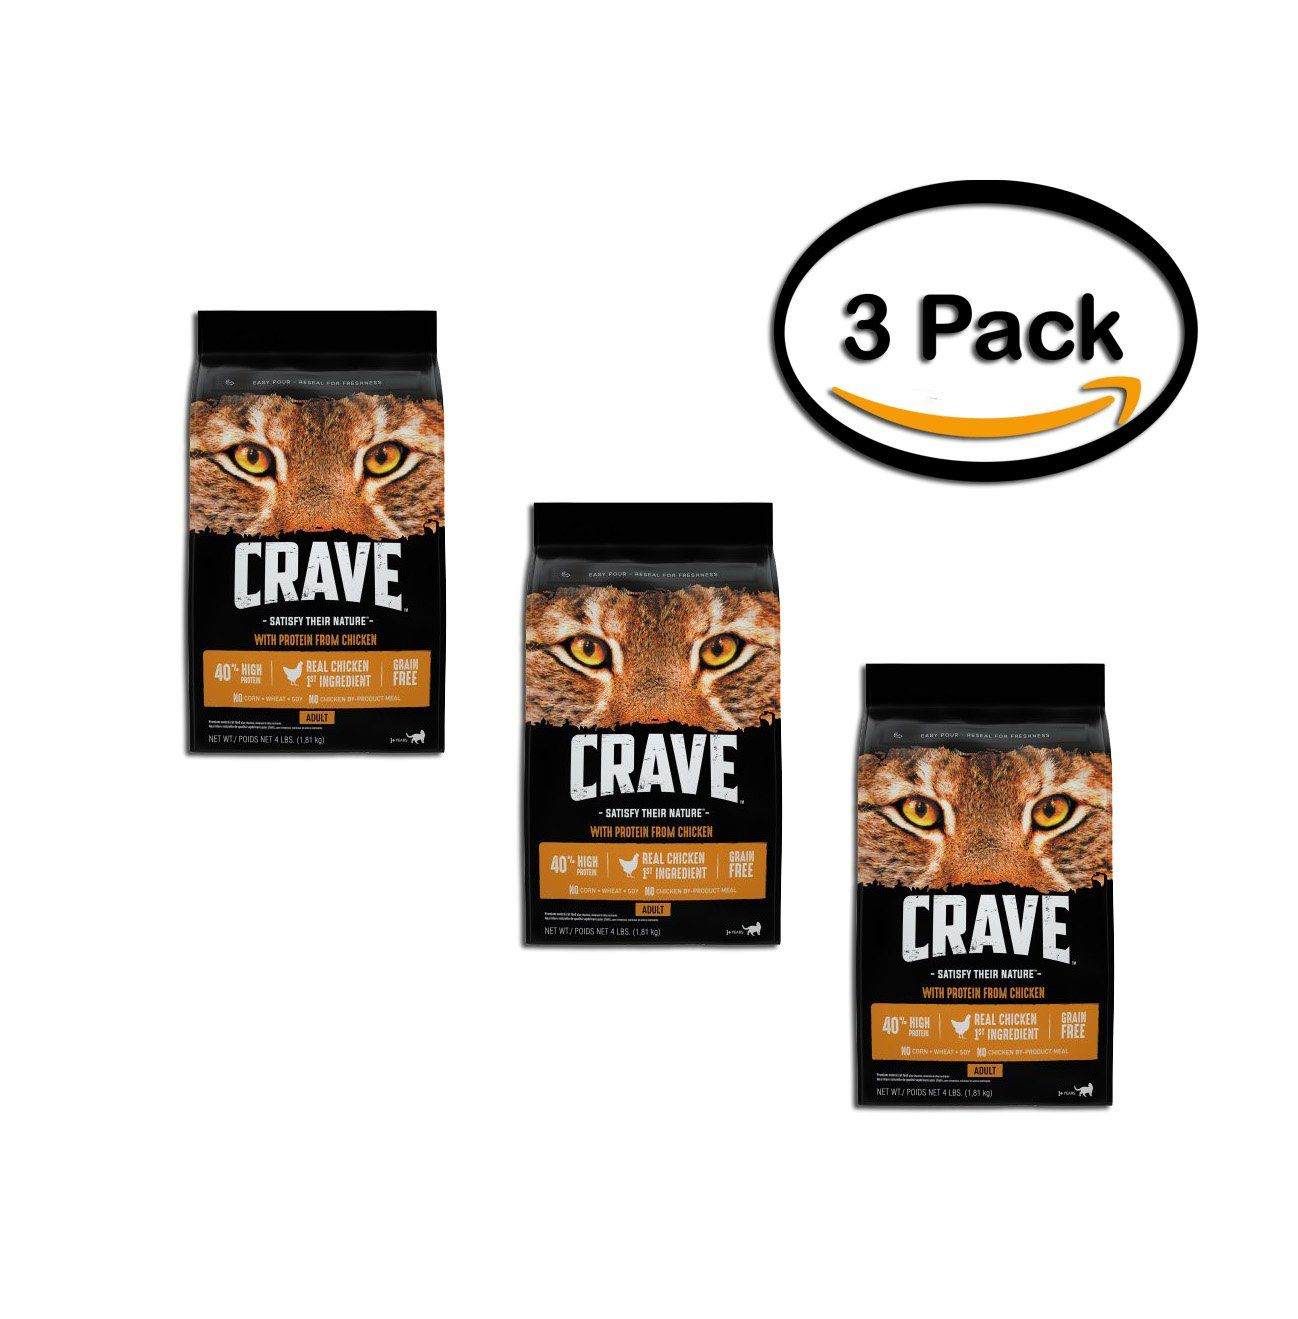 Pack Of 3 Crave Grain Free Dry Cat Food With Protein From Chicken Bag 4 Lb Very Kind Of You To Have Dropped By To View Th Dry Cat